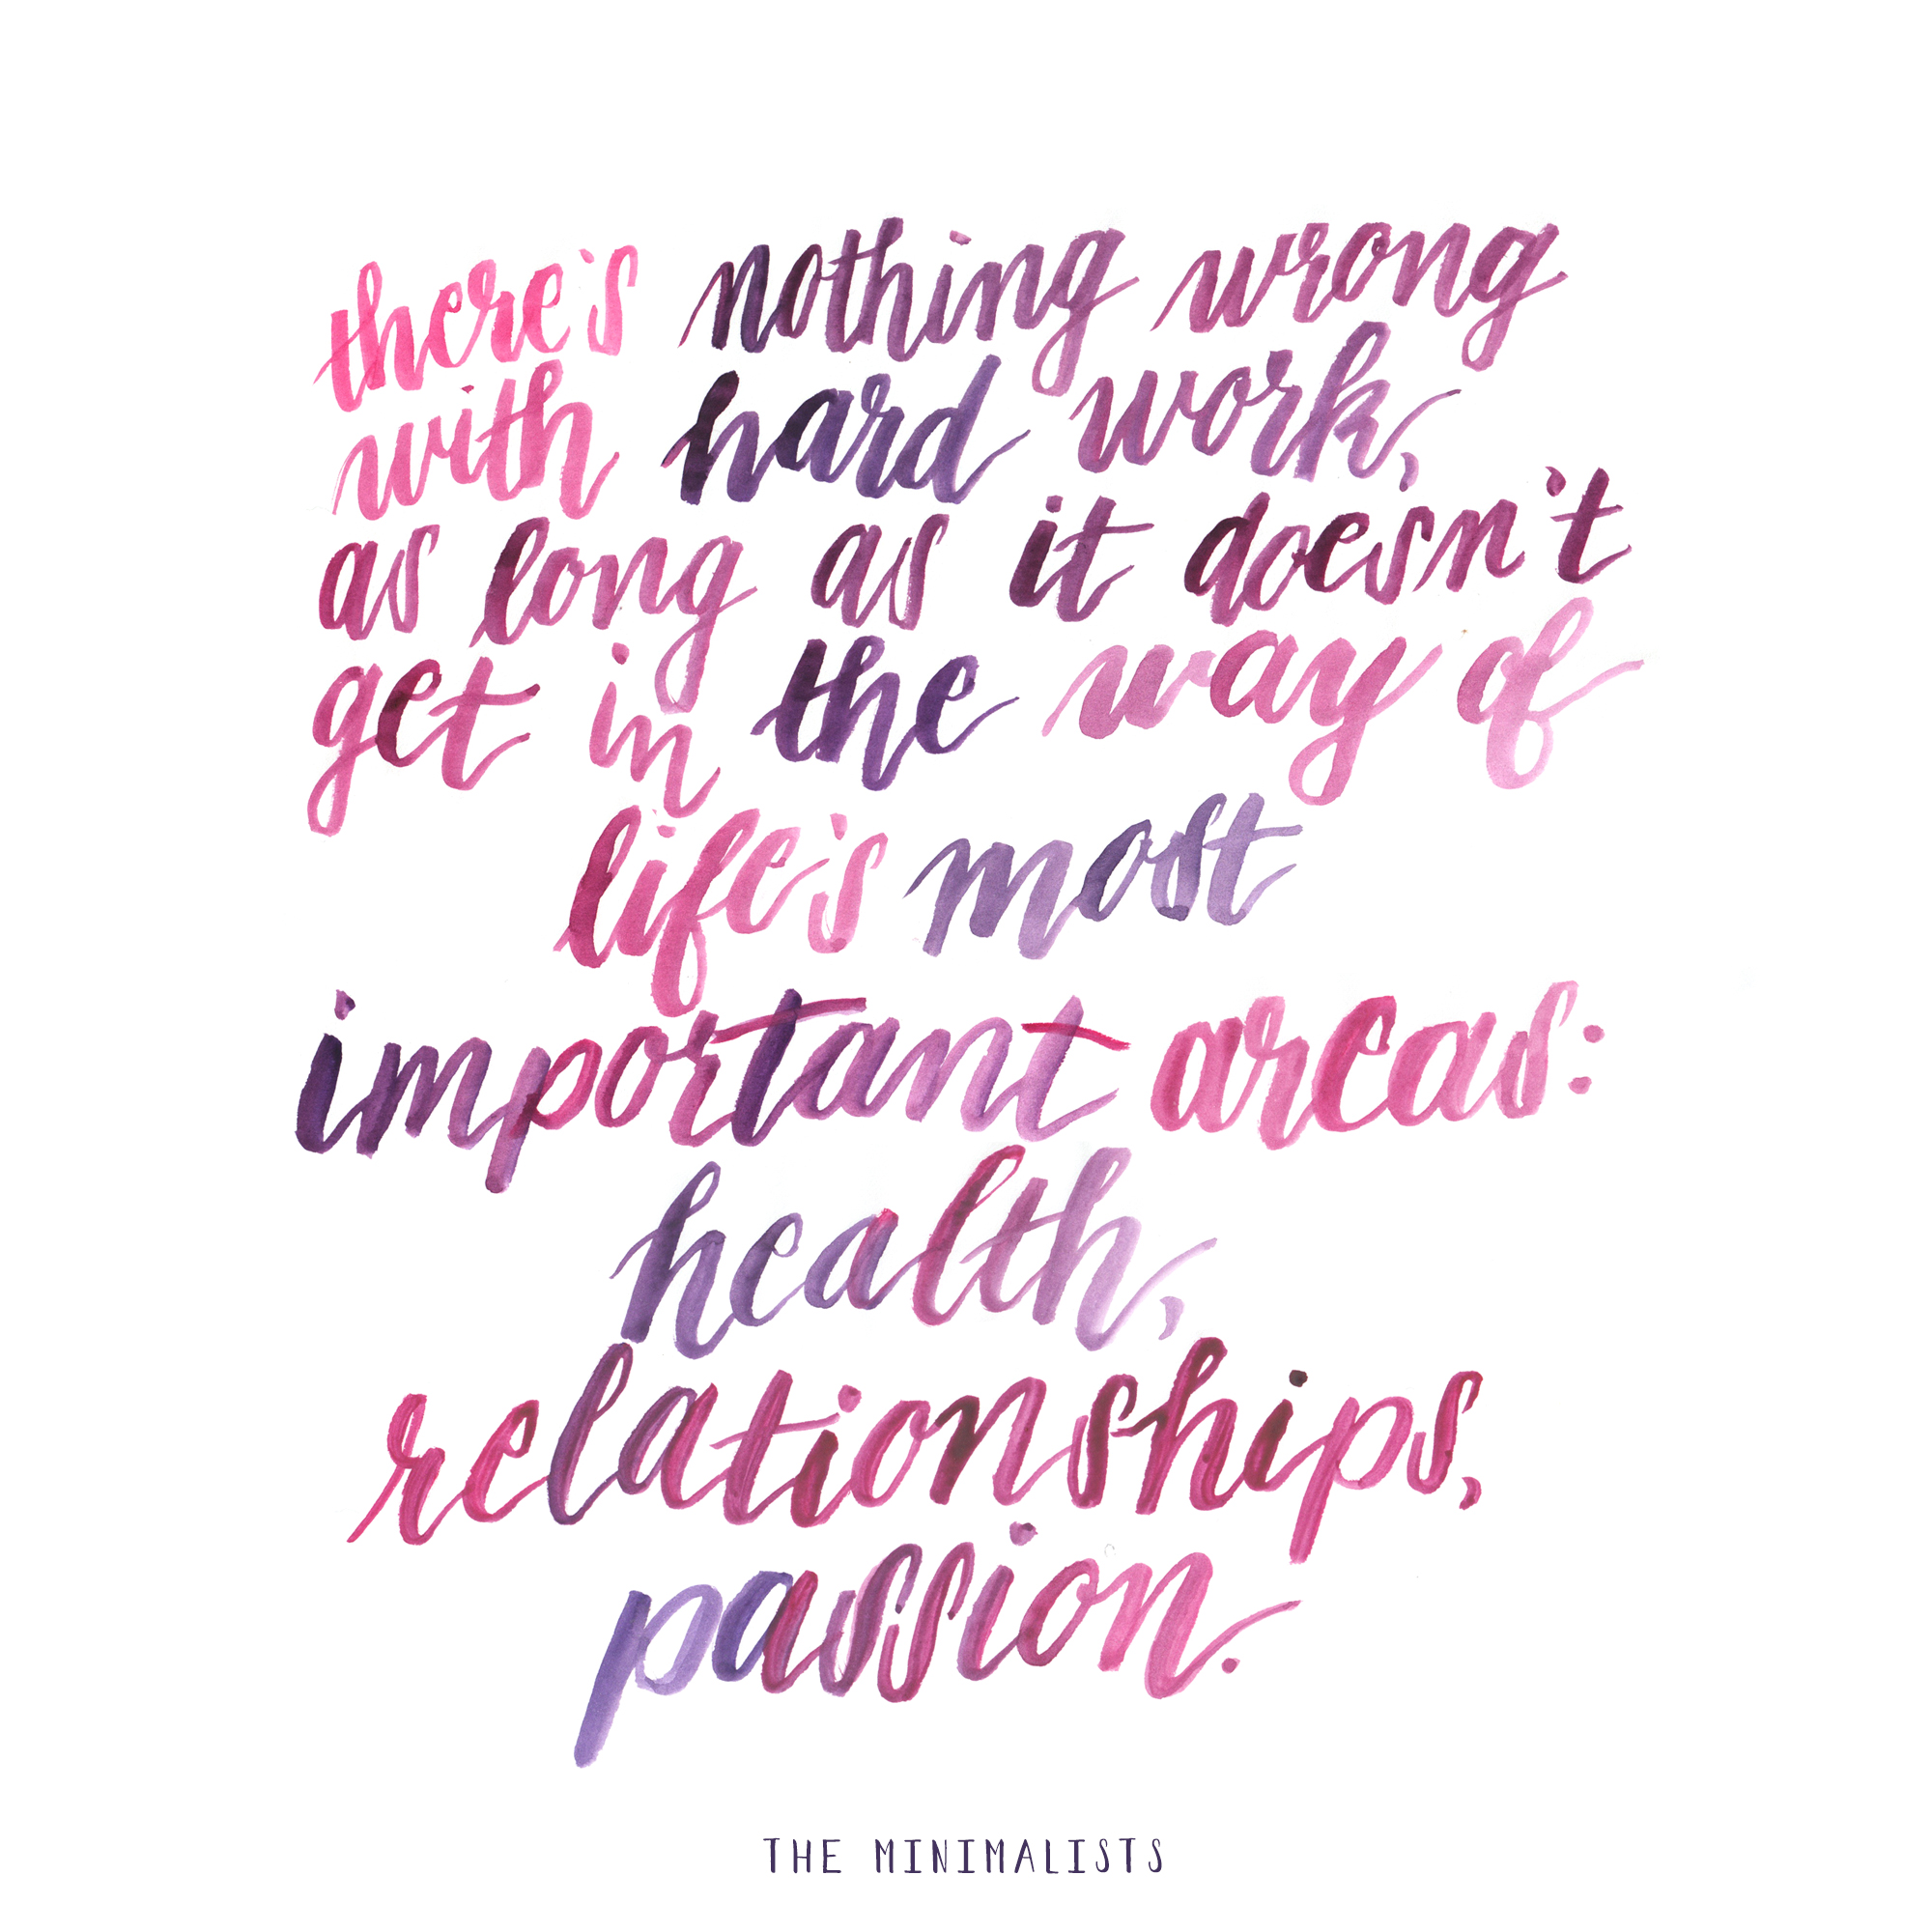 """There's nothing wrong with hard work, as long as it doesn't get in the way of life's most important areas: health, relationships, passion."" -The Minimalists"